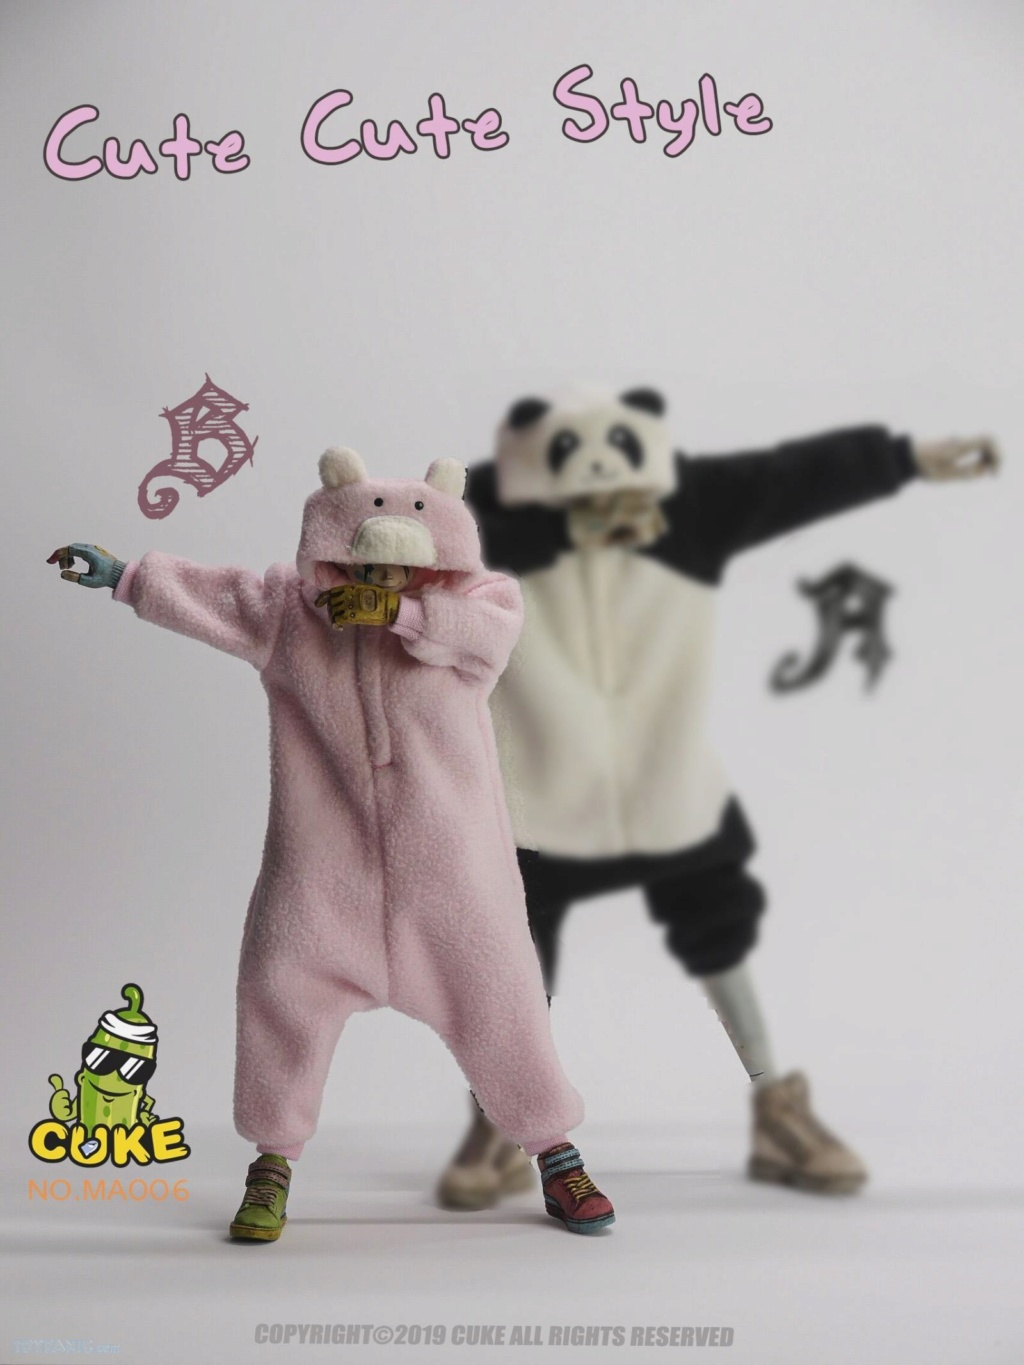 CukeToys - NEW PRODUCT: Cuke Toys: [CK-M006] 1/6 Cute Cute Style 11162013